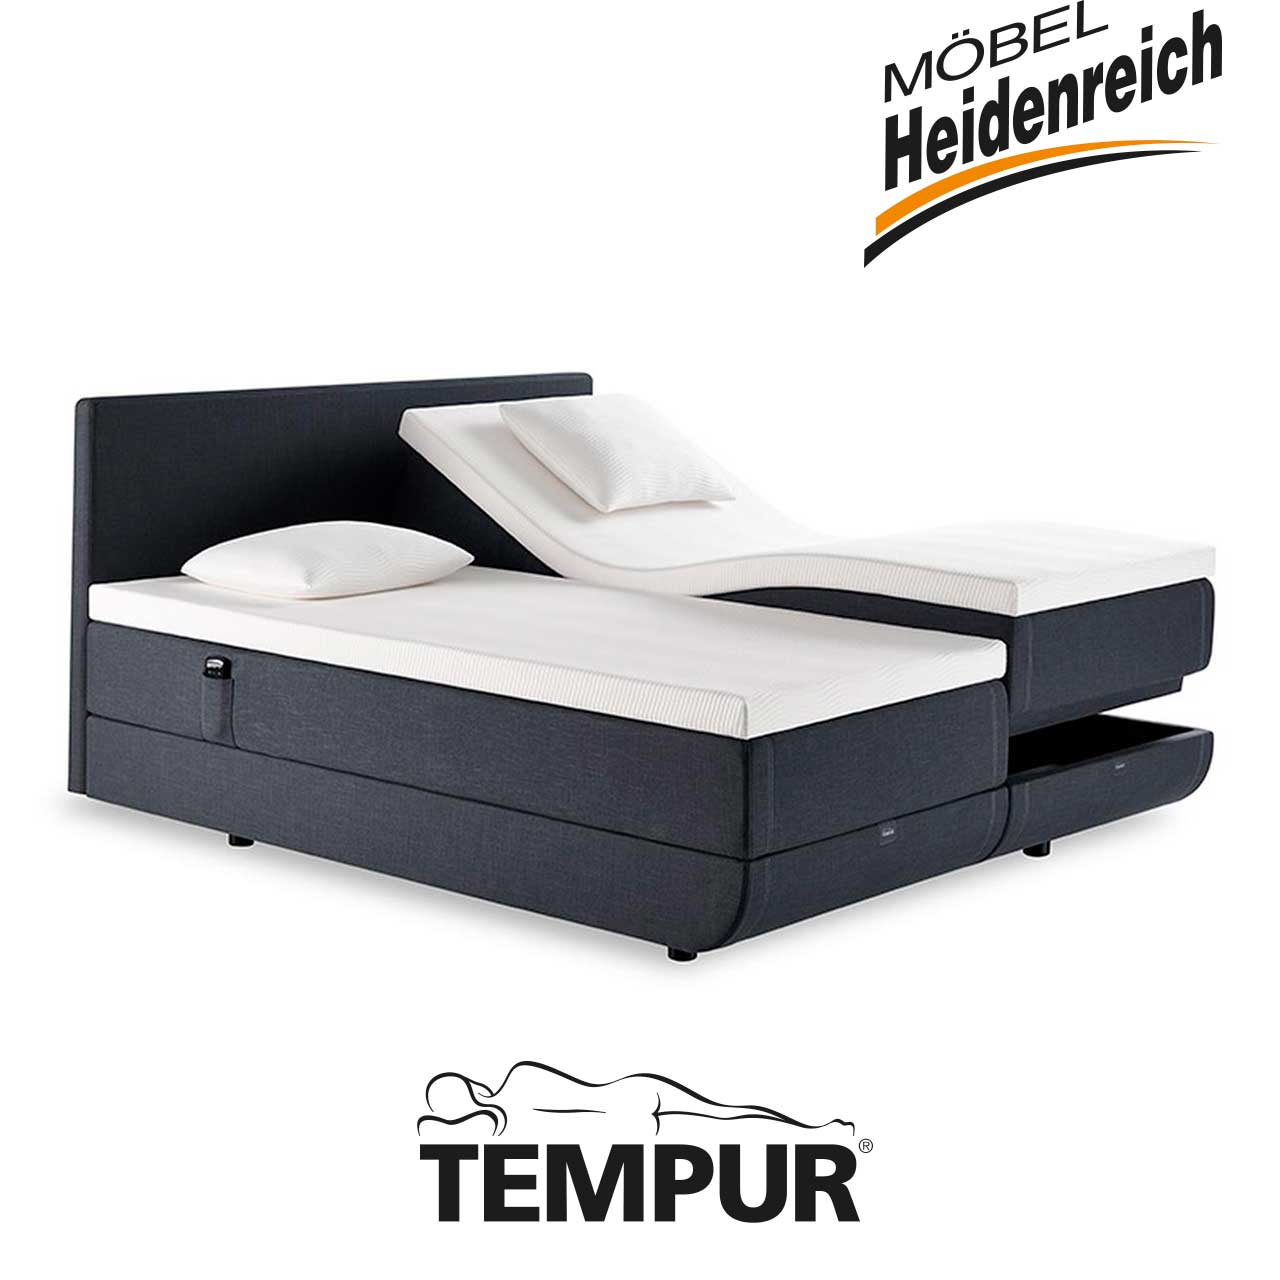 topper tempur marken m bel heidenreich. Black Bedroom Furniture Sets. Home Design Ideas